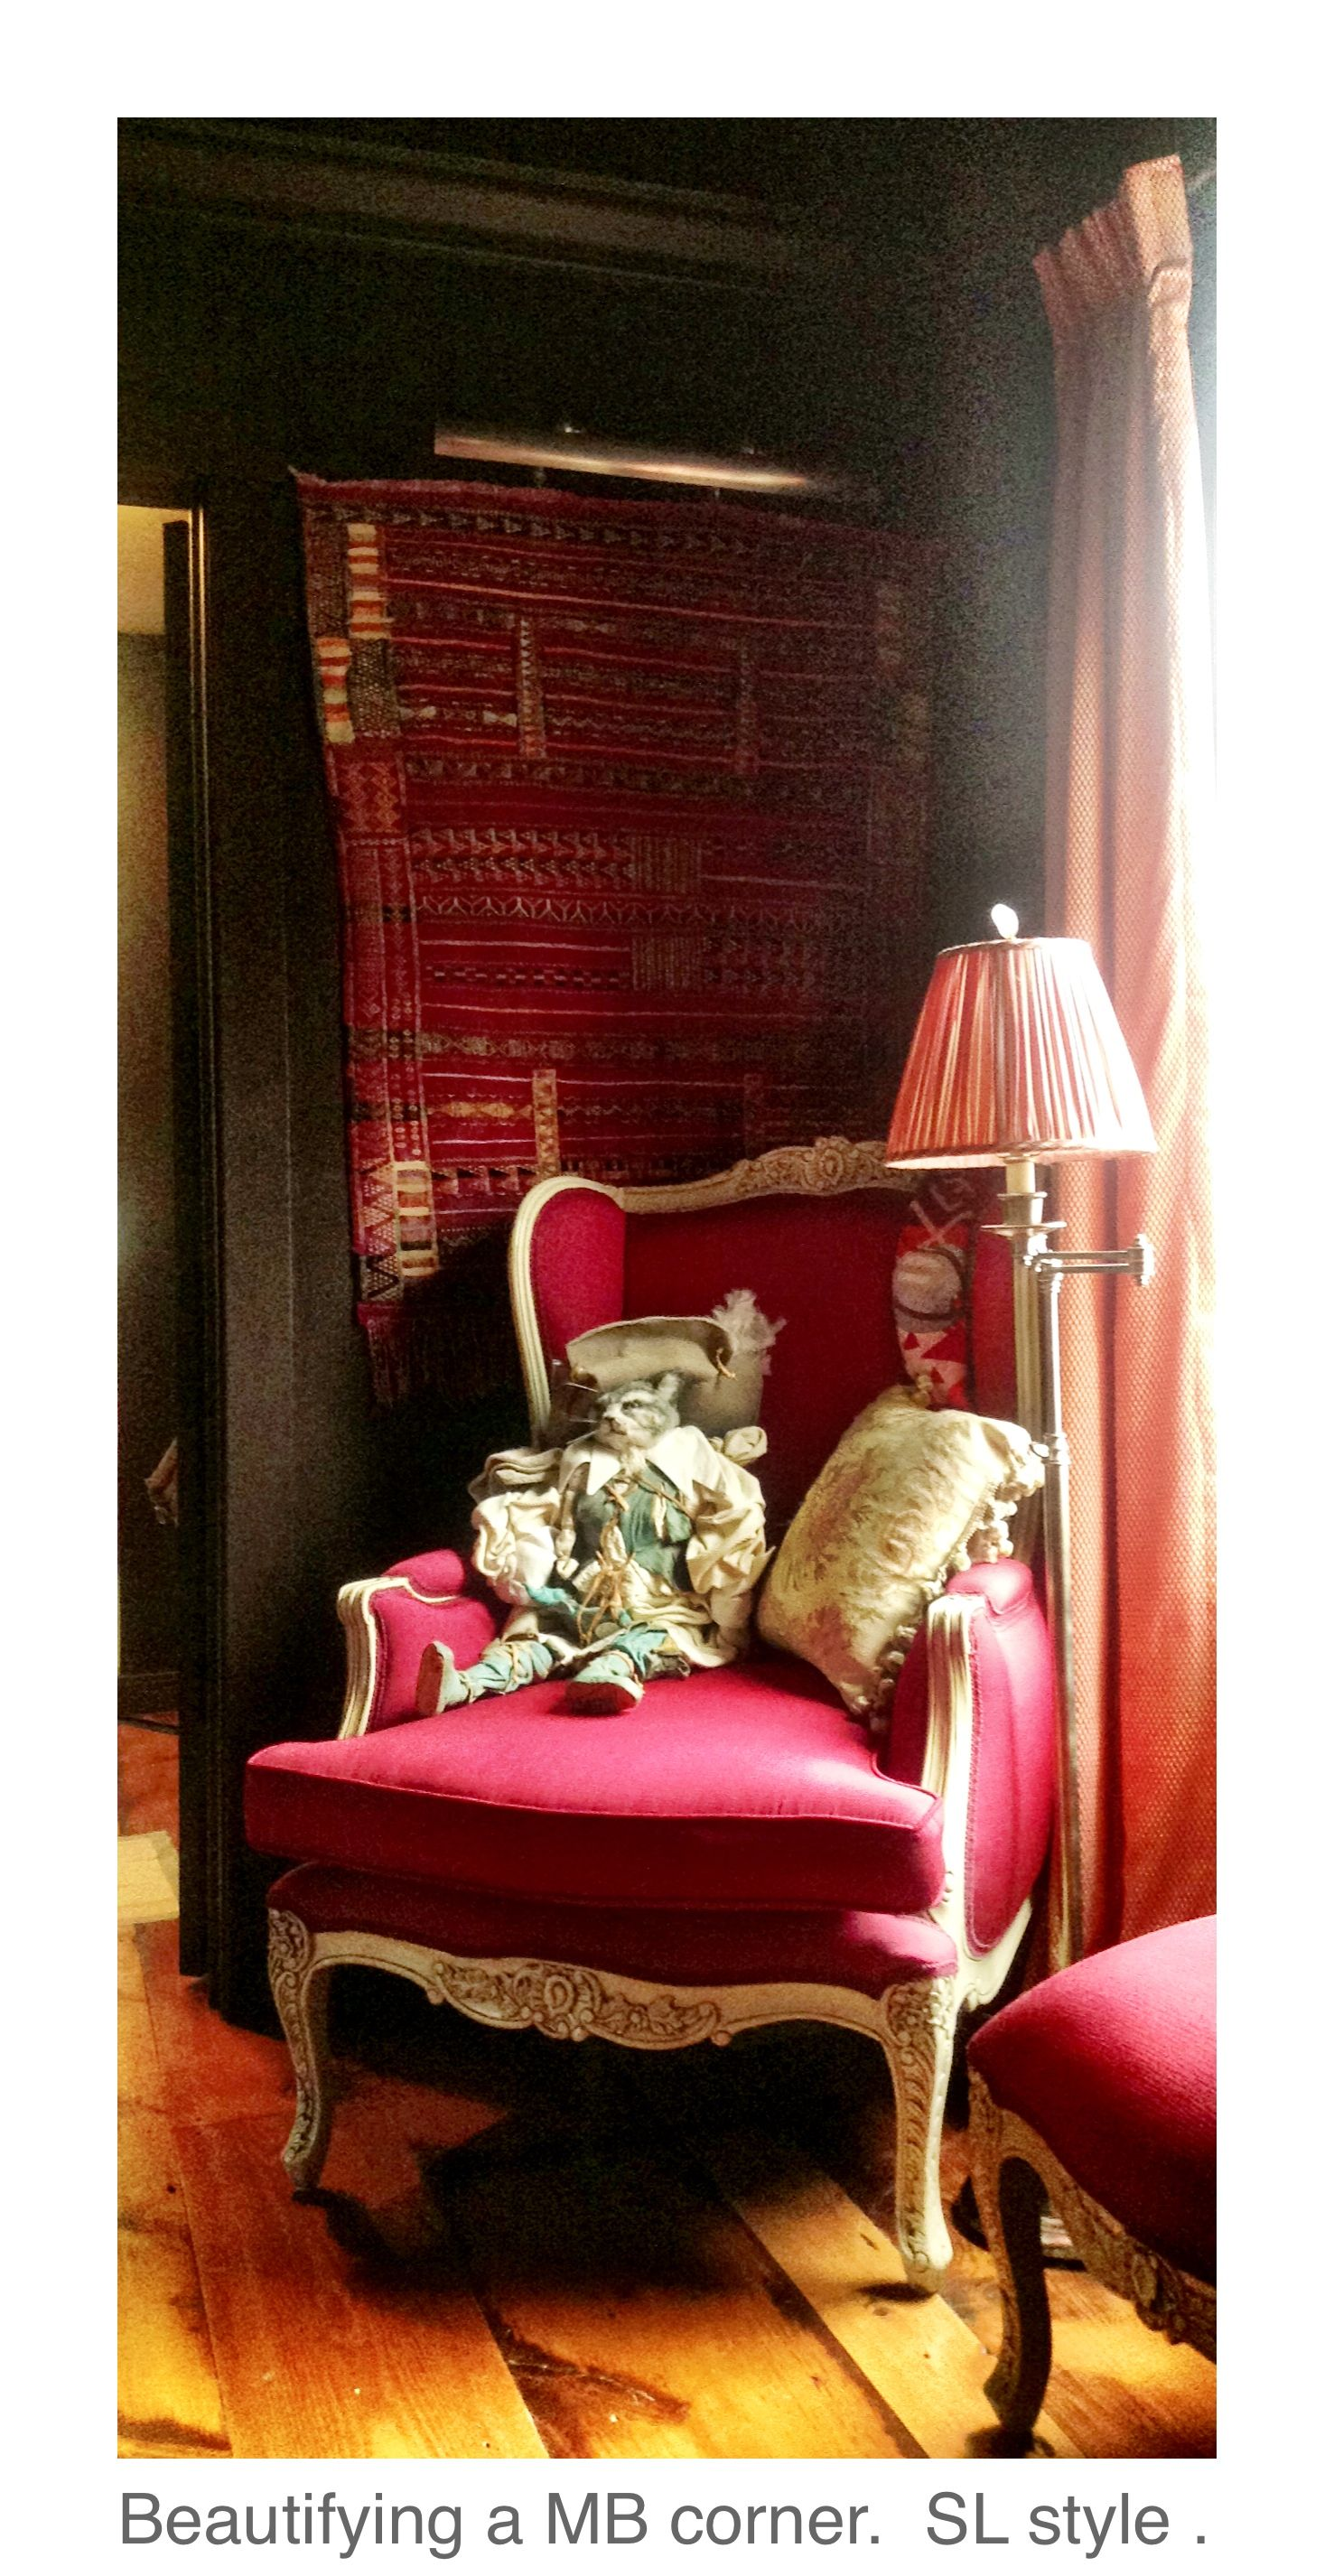 Morocco meets French Country Style. Room designed, sourced & decorated by Silvina Leone. C. 2013.  All rights reserved.